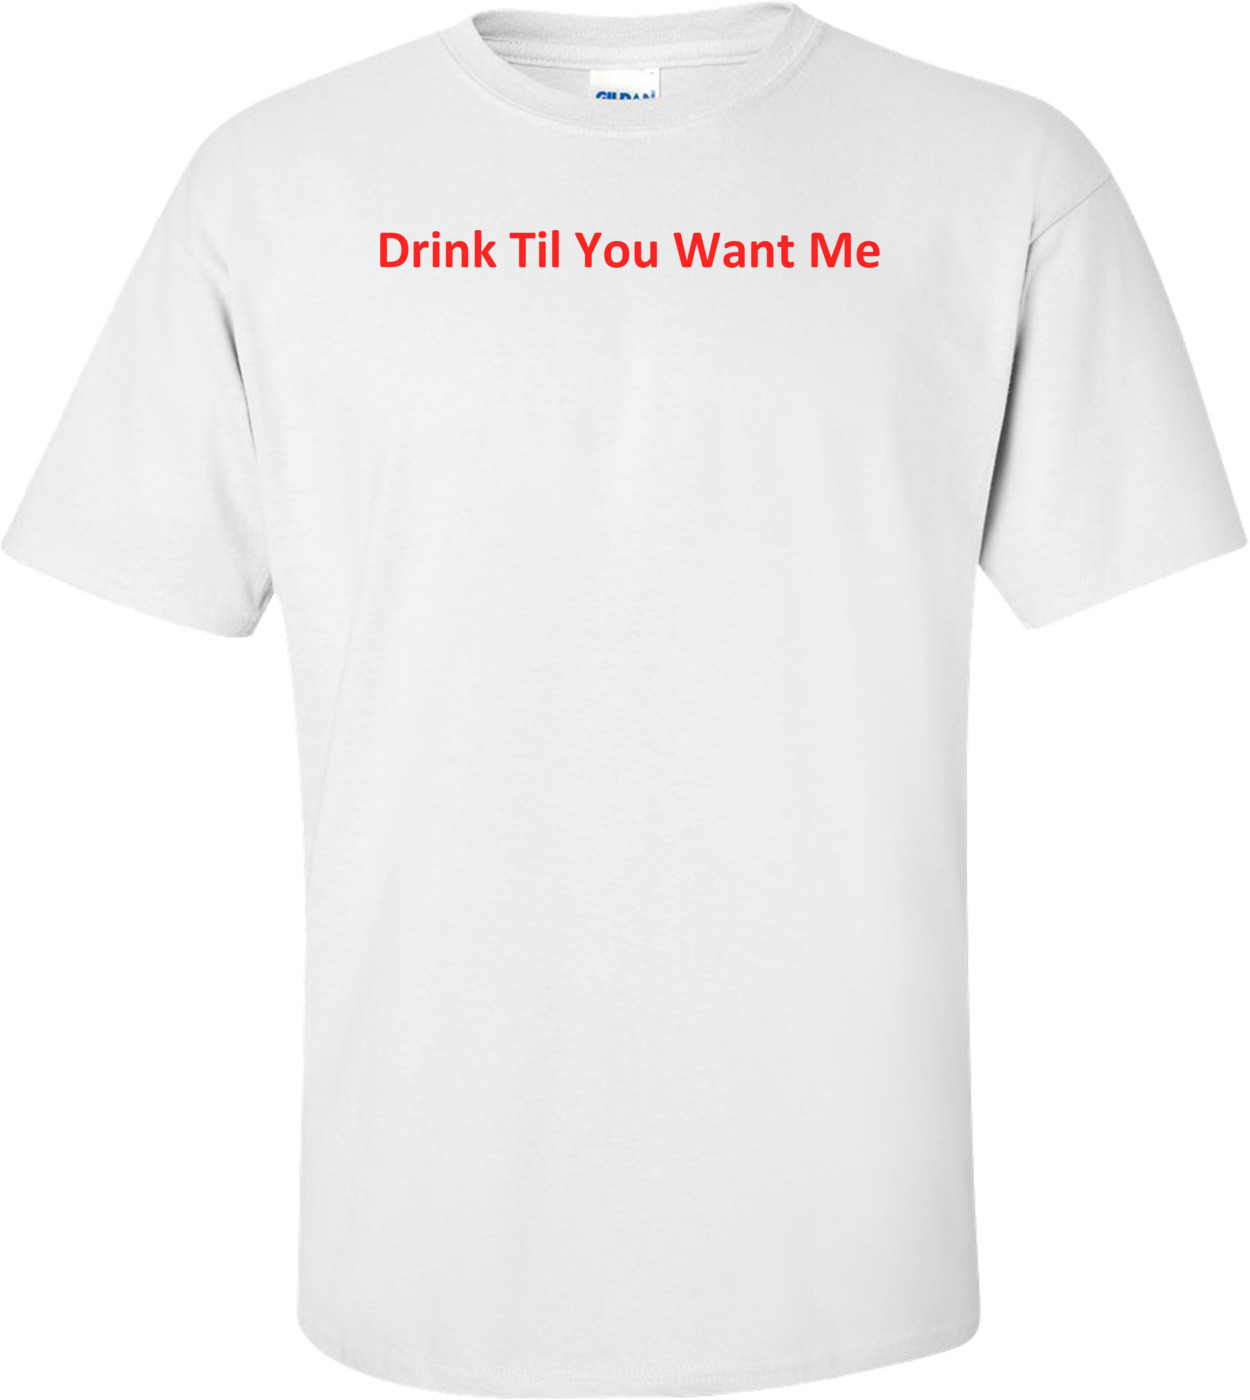 Drink Til You Want Me Shirt